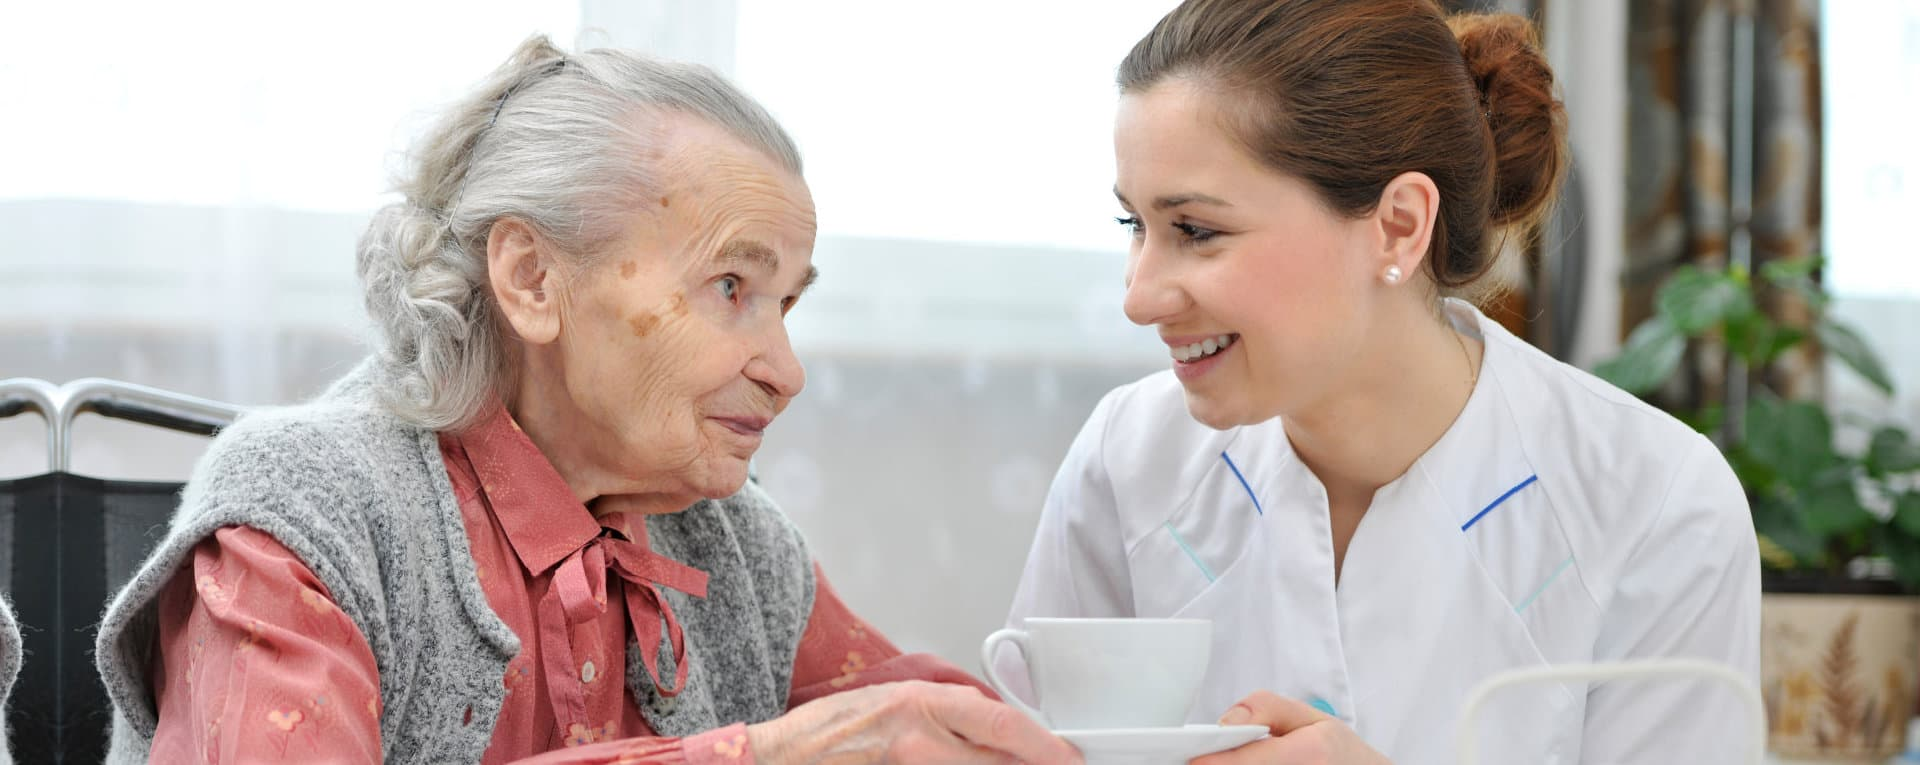 caregiver serving coffee to an old woman